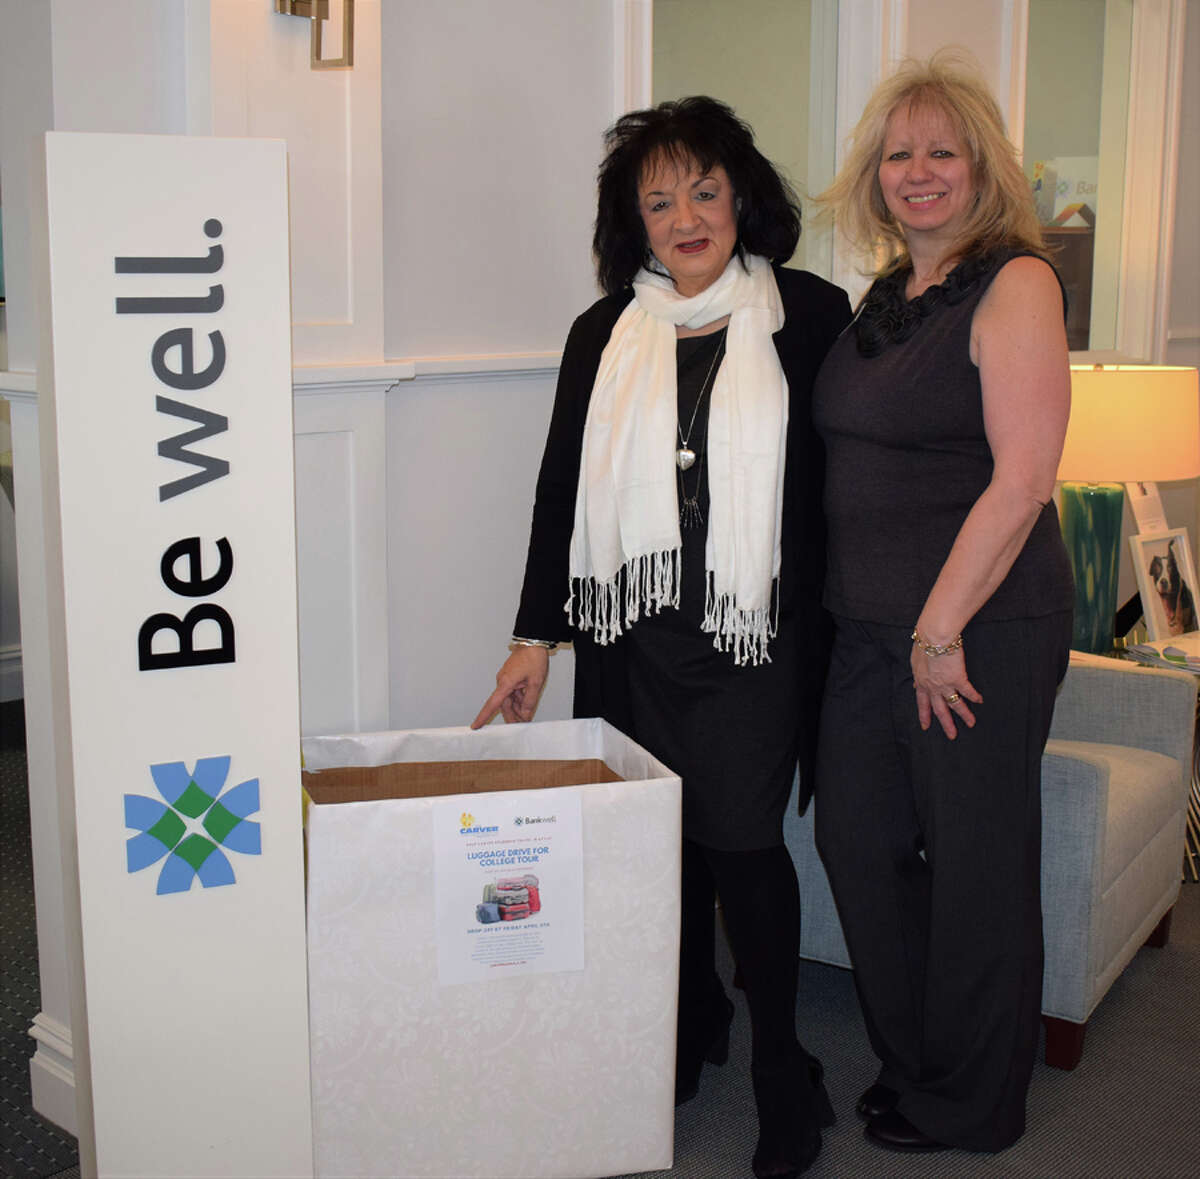 Bankwell in New Canaan Branch Manager, Flo Carbone and Universal Banker at Bankwell in New Canaan, Martha Melitsanopoulos with luggage being collected for the Carver Foundation's College Tour.- Contributed photo